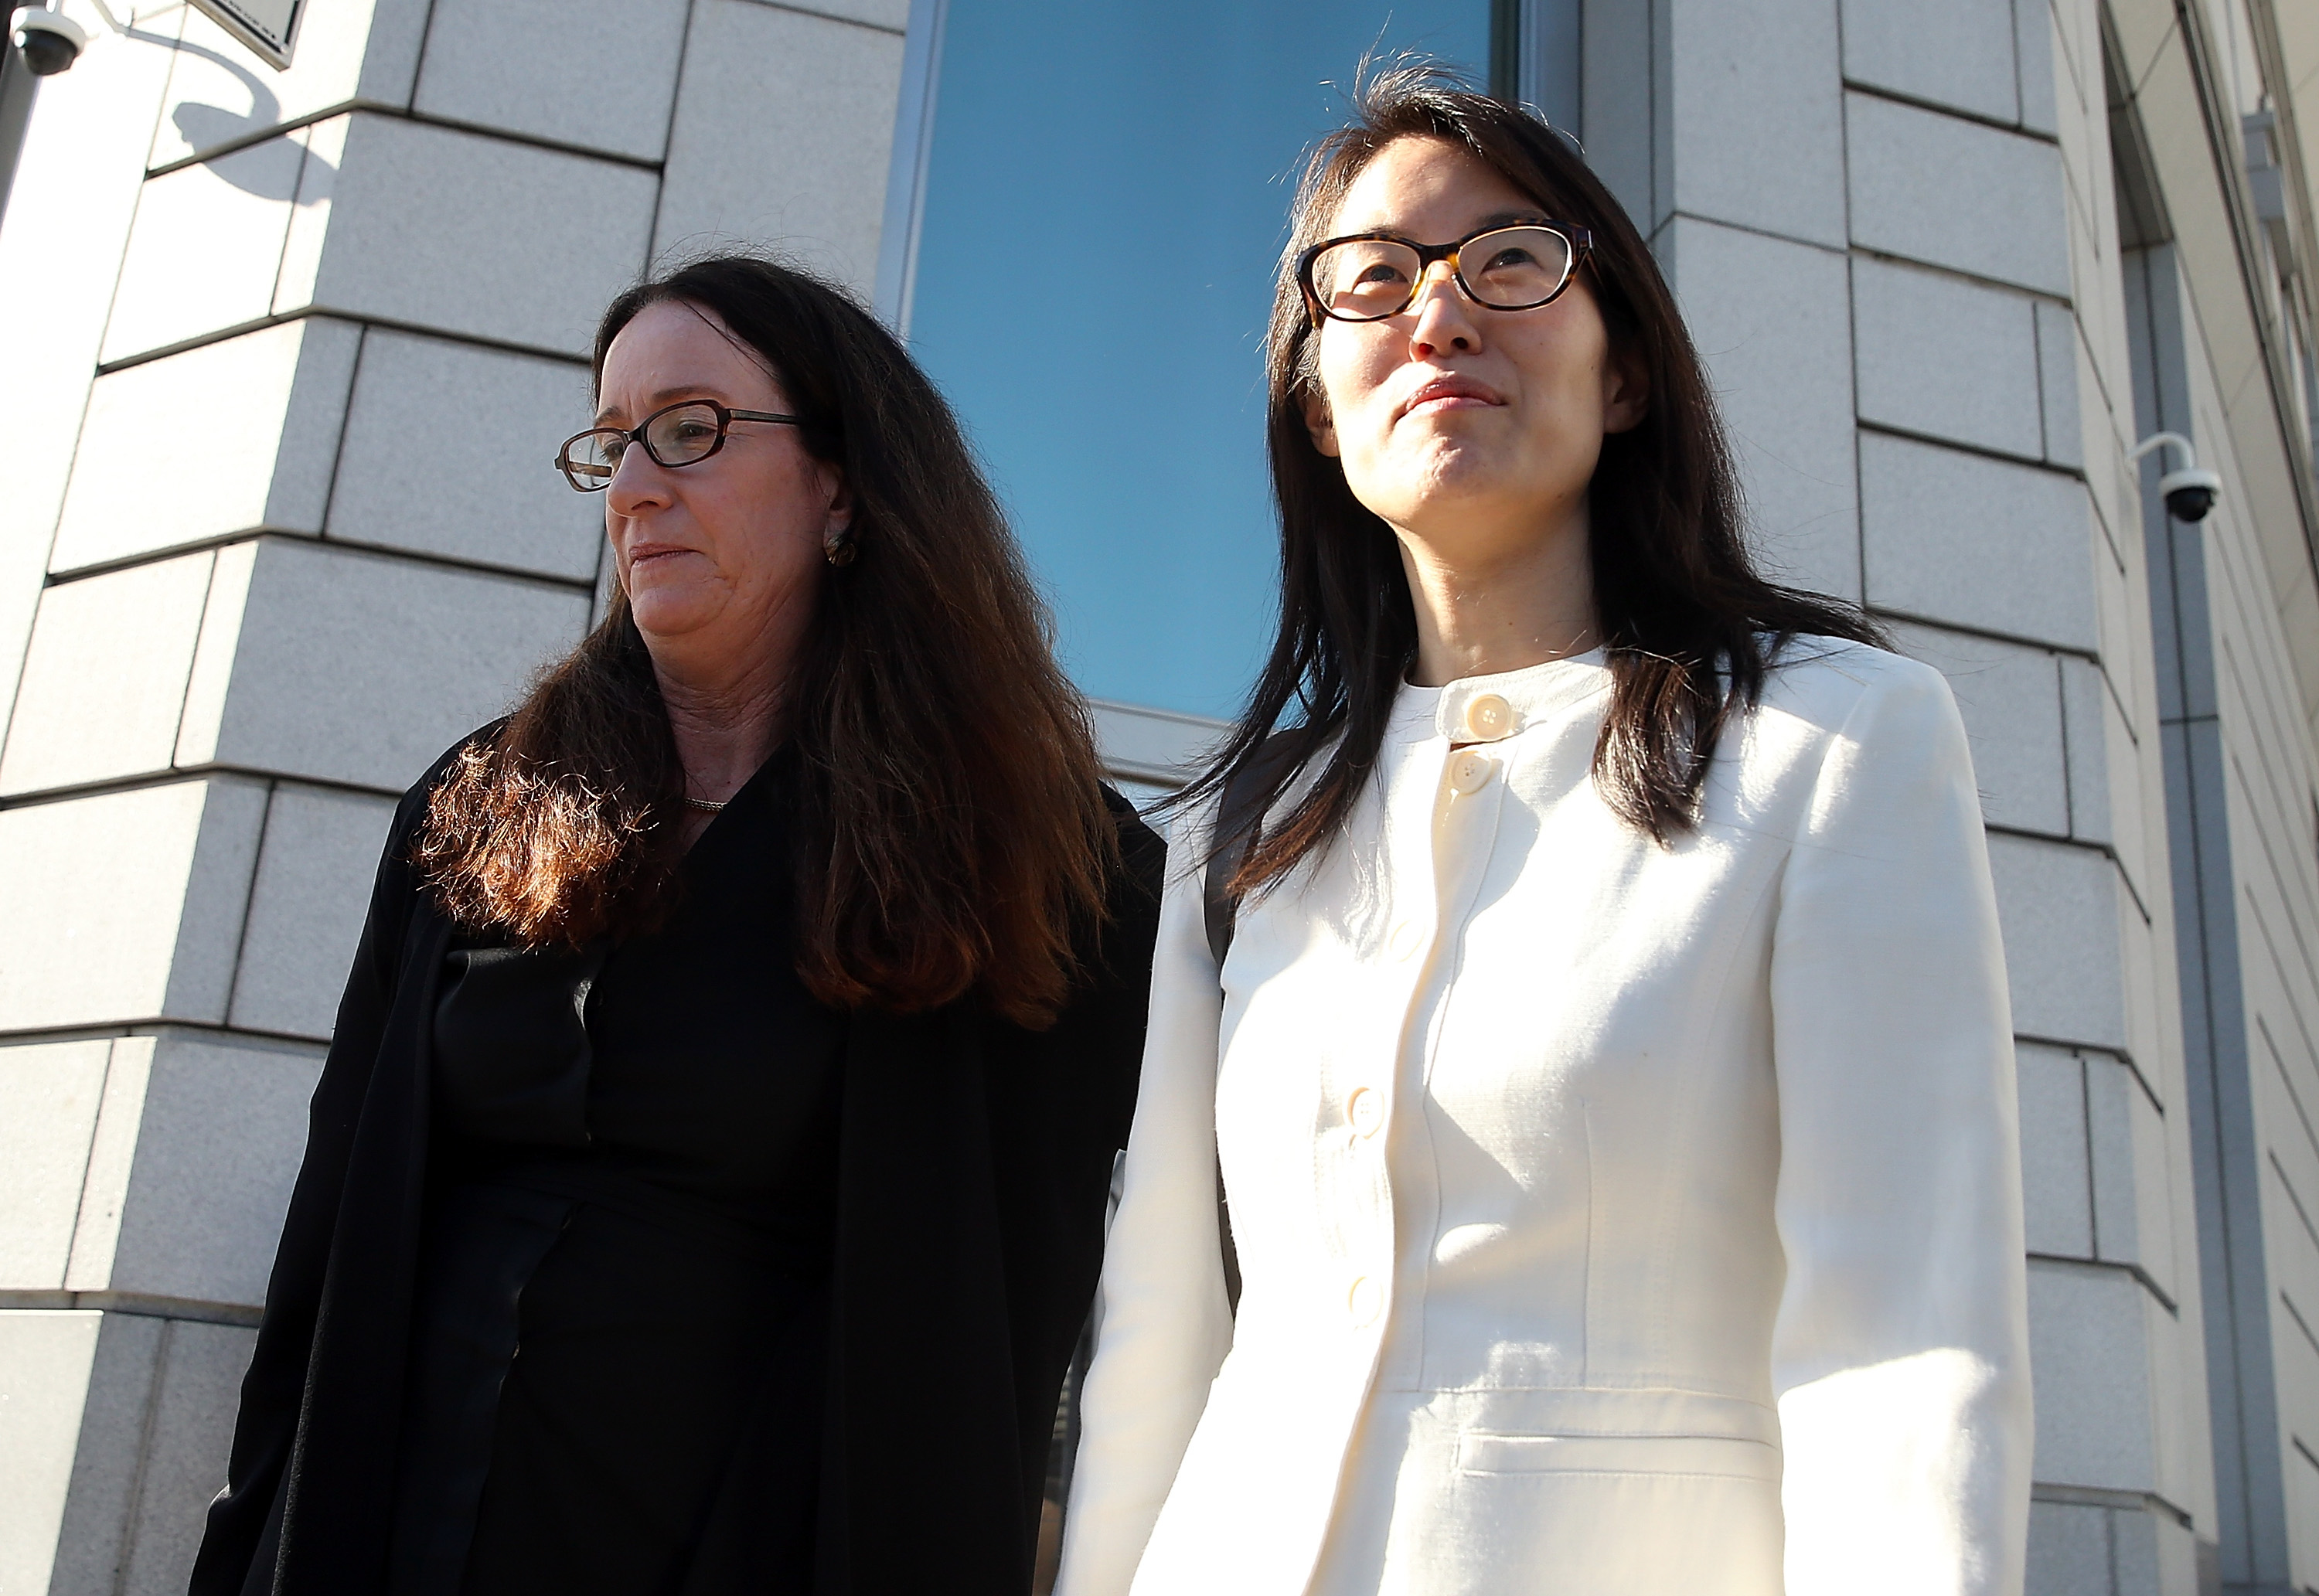 Ellen Pao, right, with attorney Therese Lawless after their courtroom loss. Pao could avoid paying legal fees if she refrains from filing an appeal.